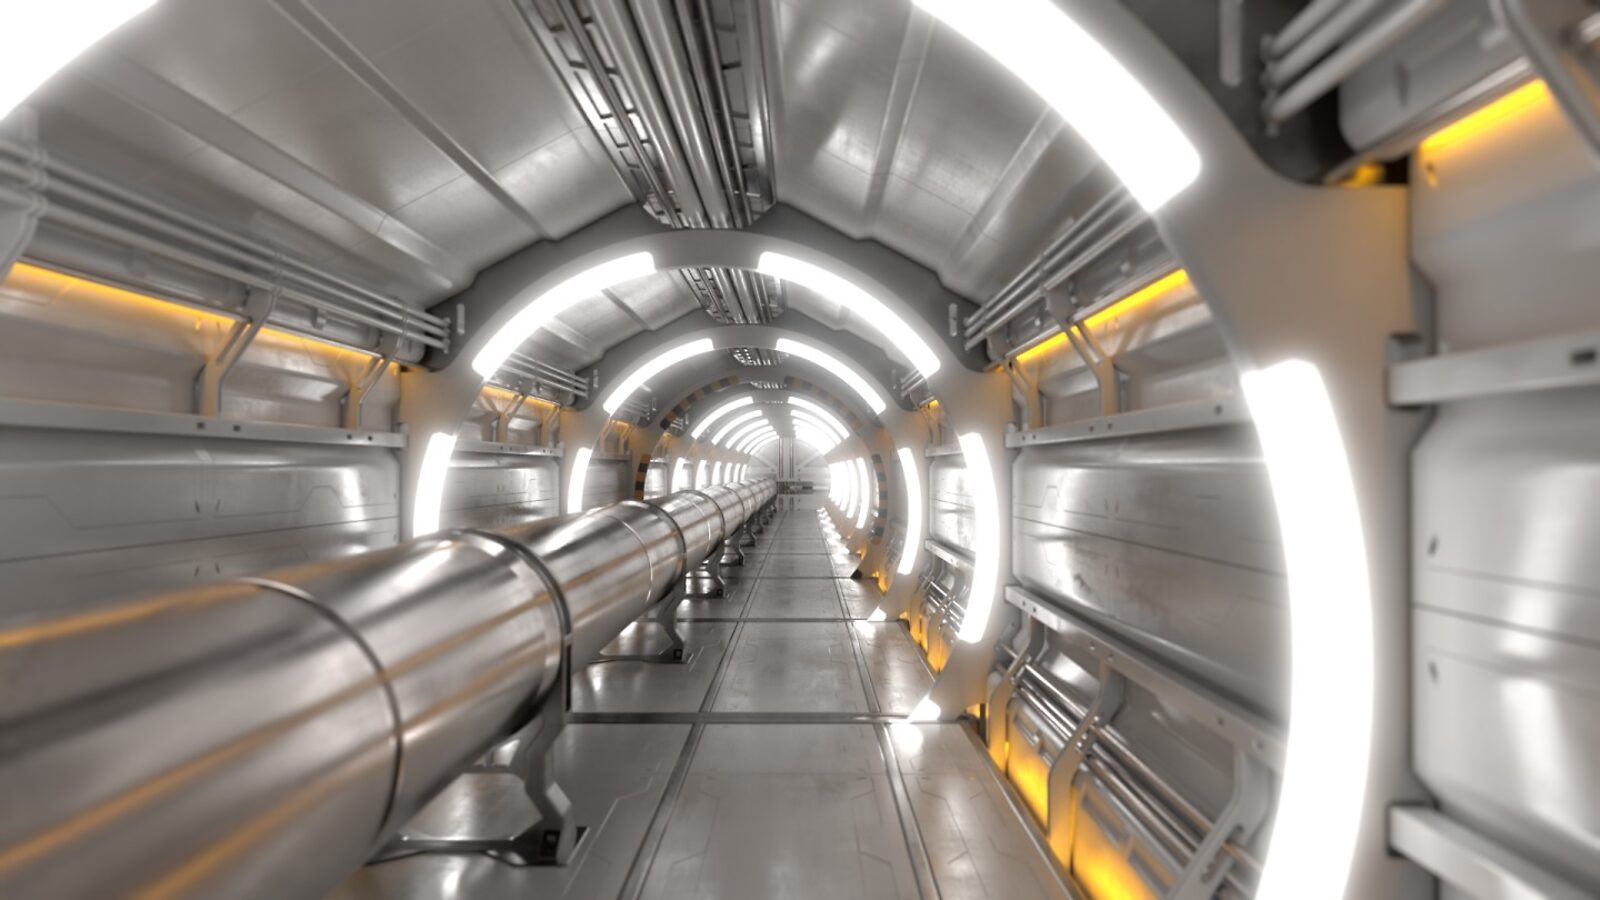 Interior of a collider tunnel